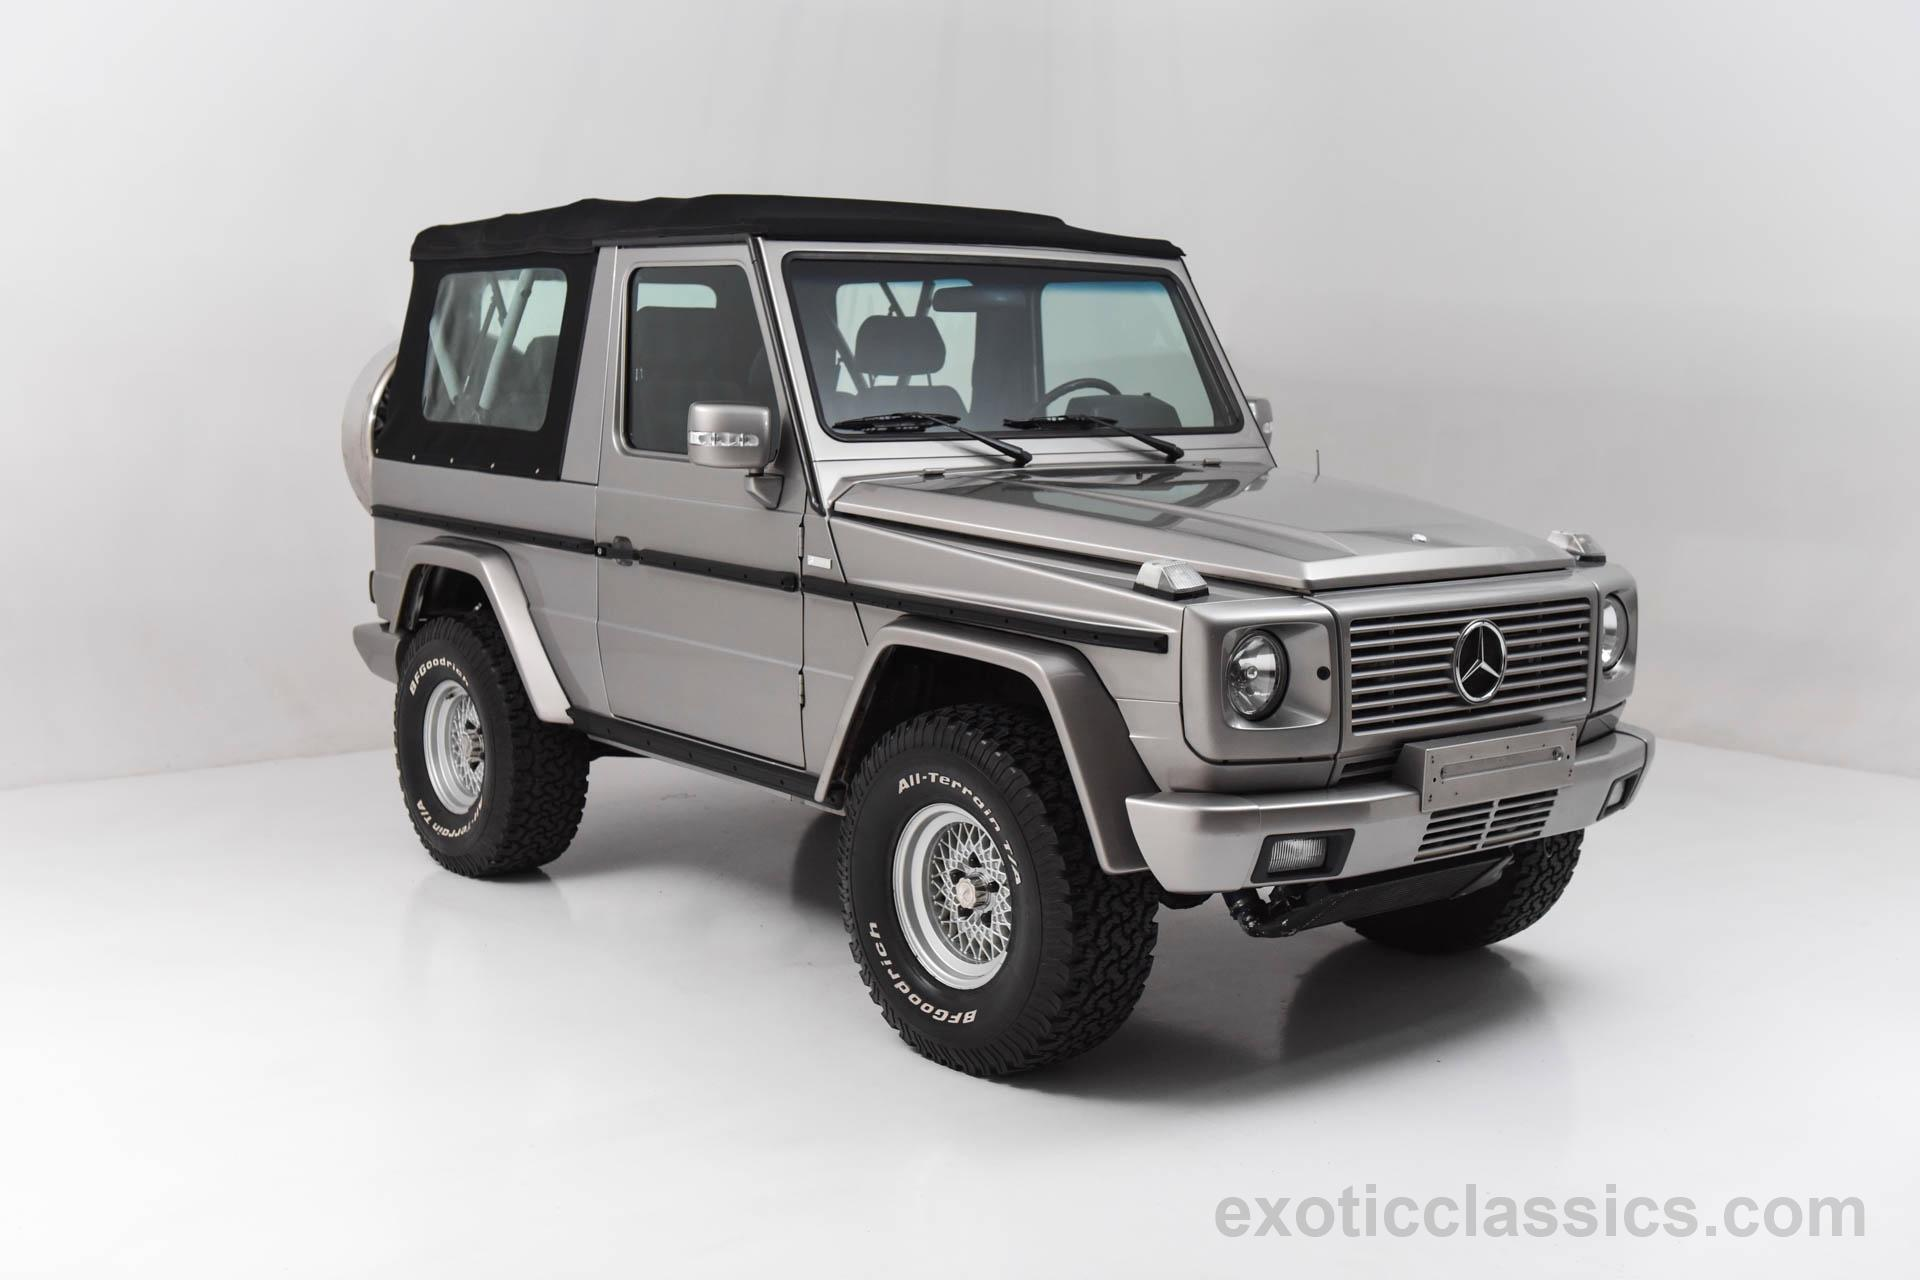 1985 Mercedes Benz Gelandenwagen Cabriolet G CLASS Exotic and